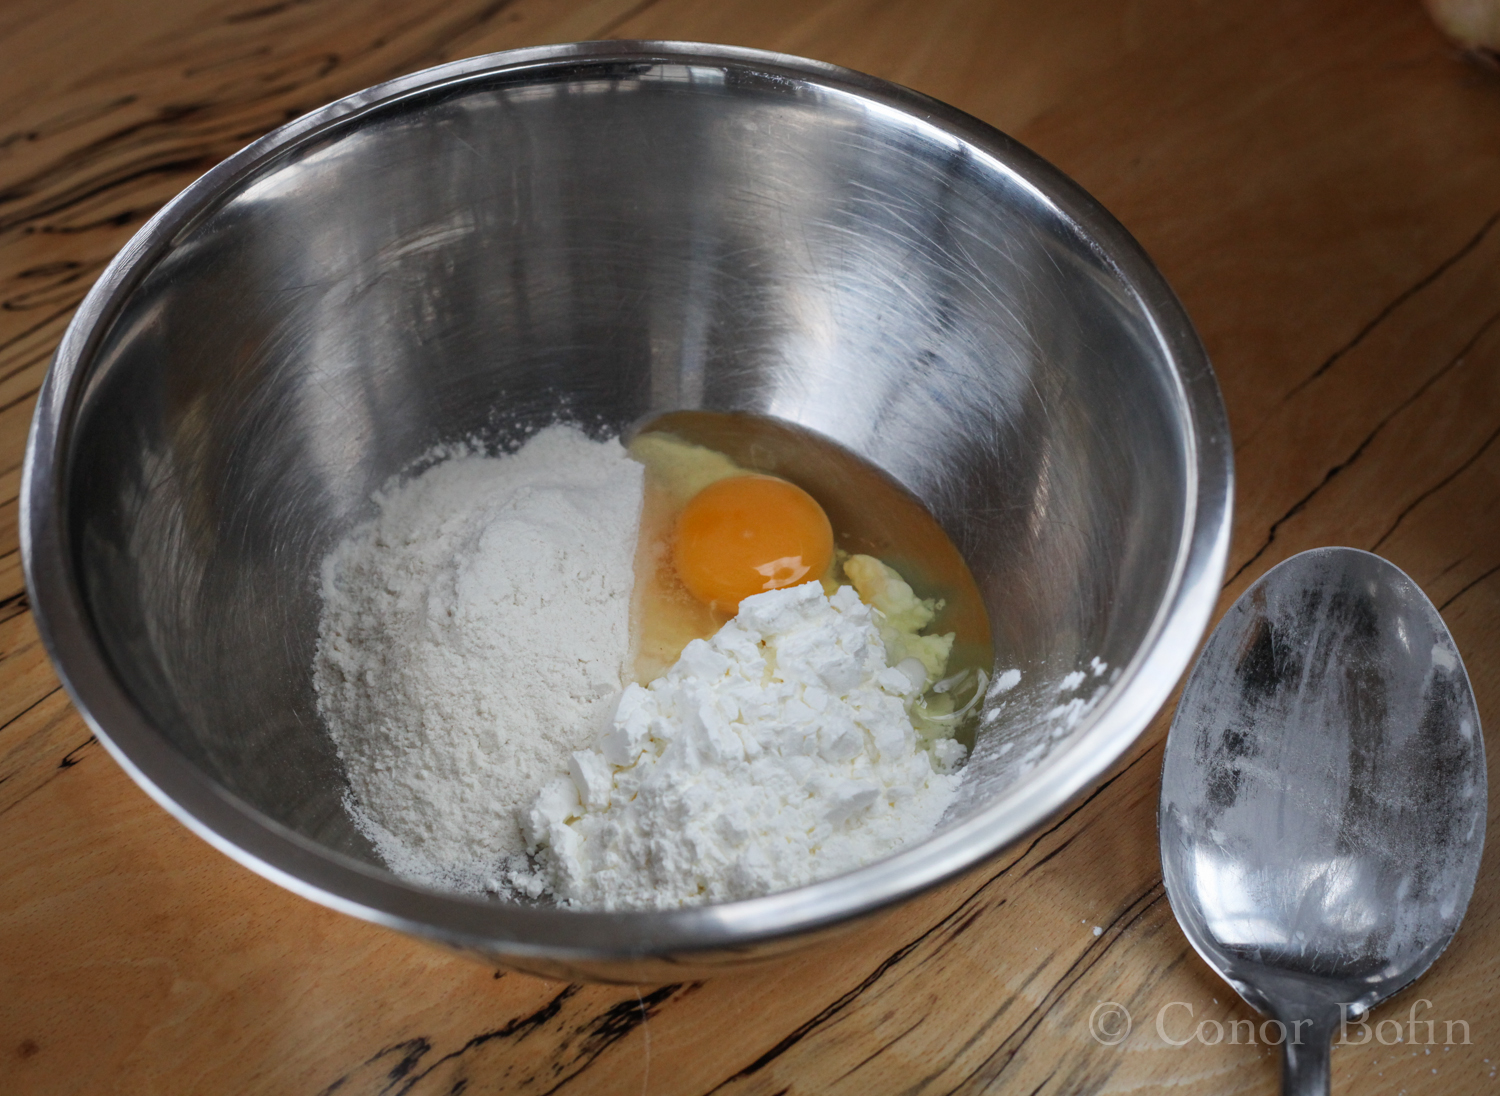 There is very little to making the batter. Just mix up the ingredients.